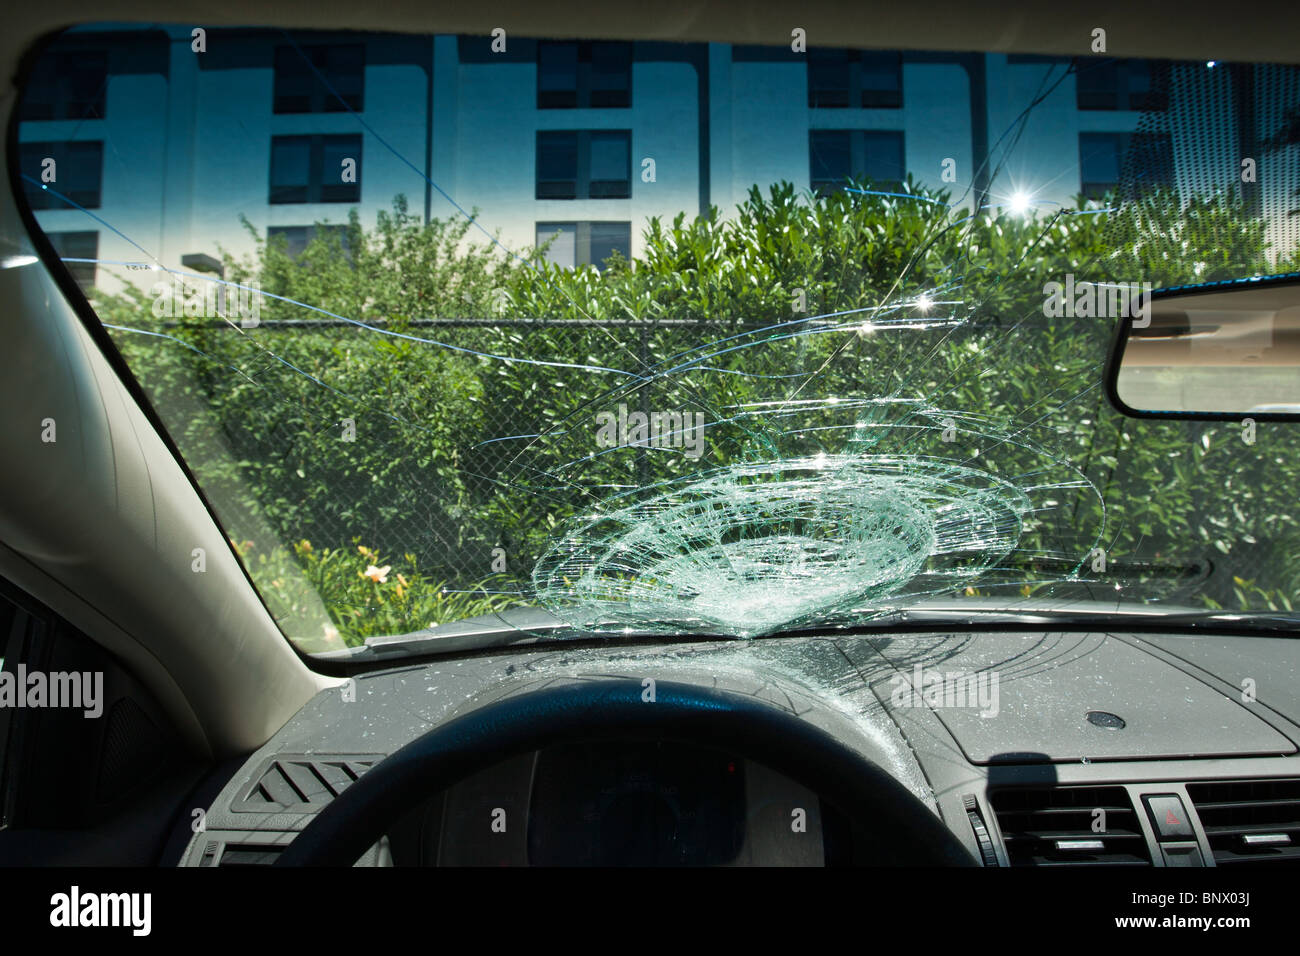 smashed front windscreen of a parked car - Stock Image